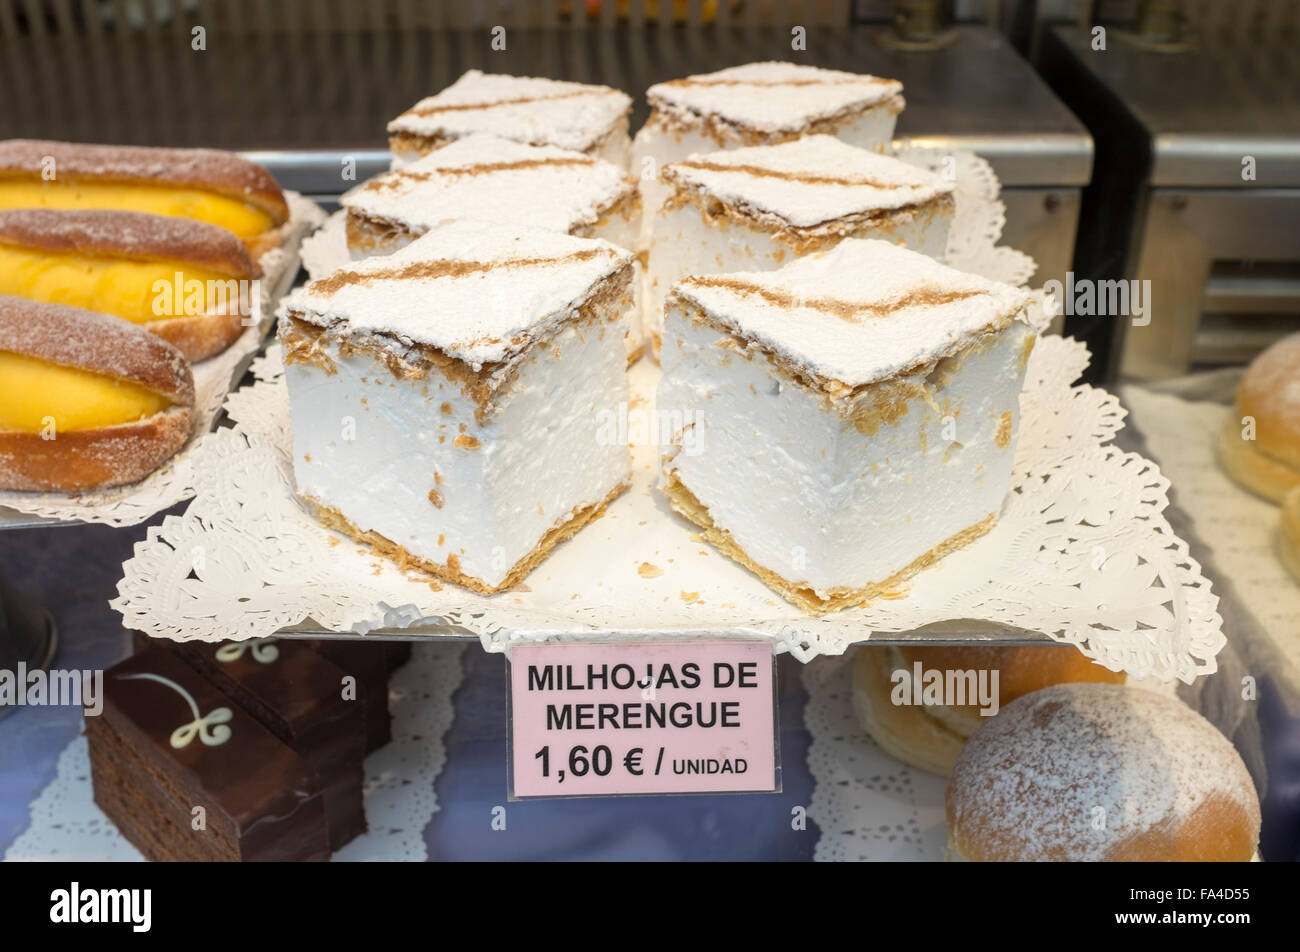 Cakes on display in La Mallorquina Patisserie in Madrid - Stock Image